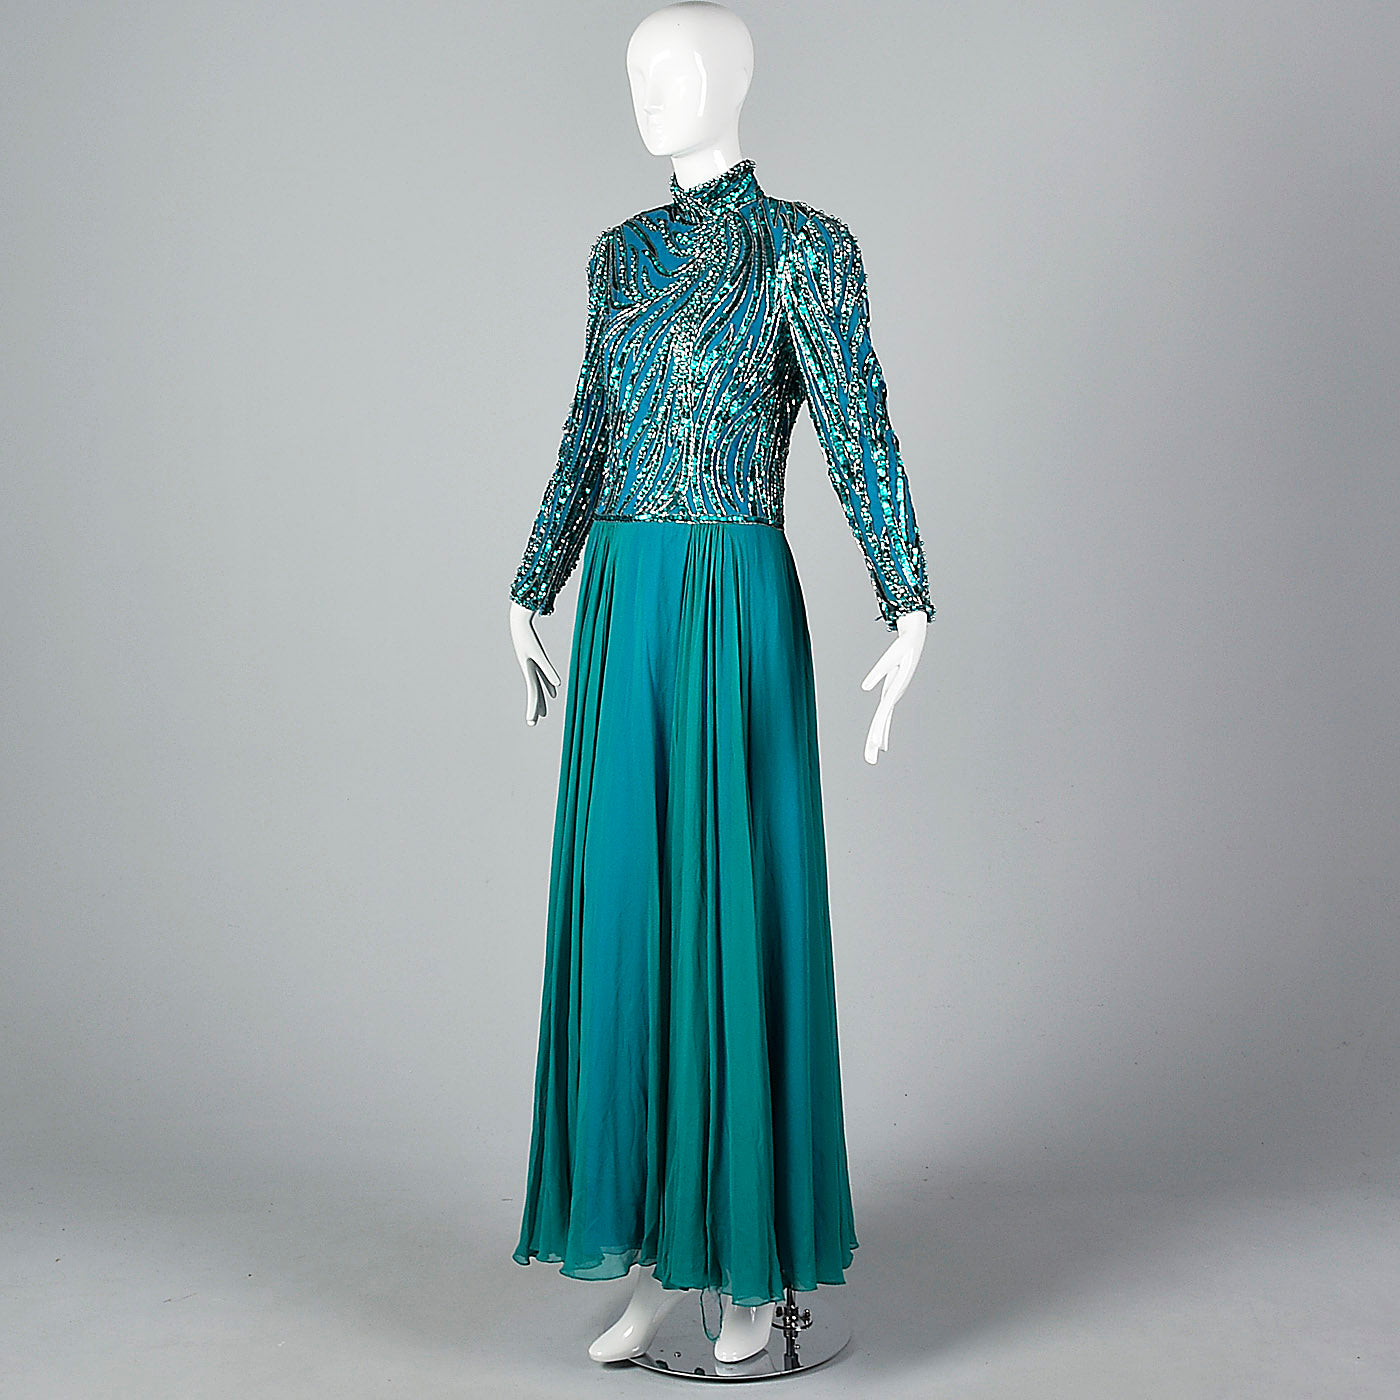 Sequined Bob Mackie Gown with a Layered Silk Chiffon Skirt